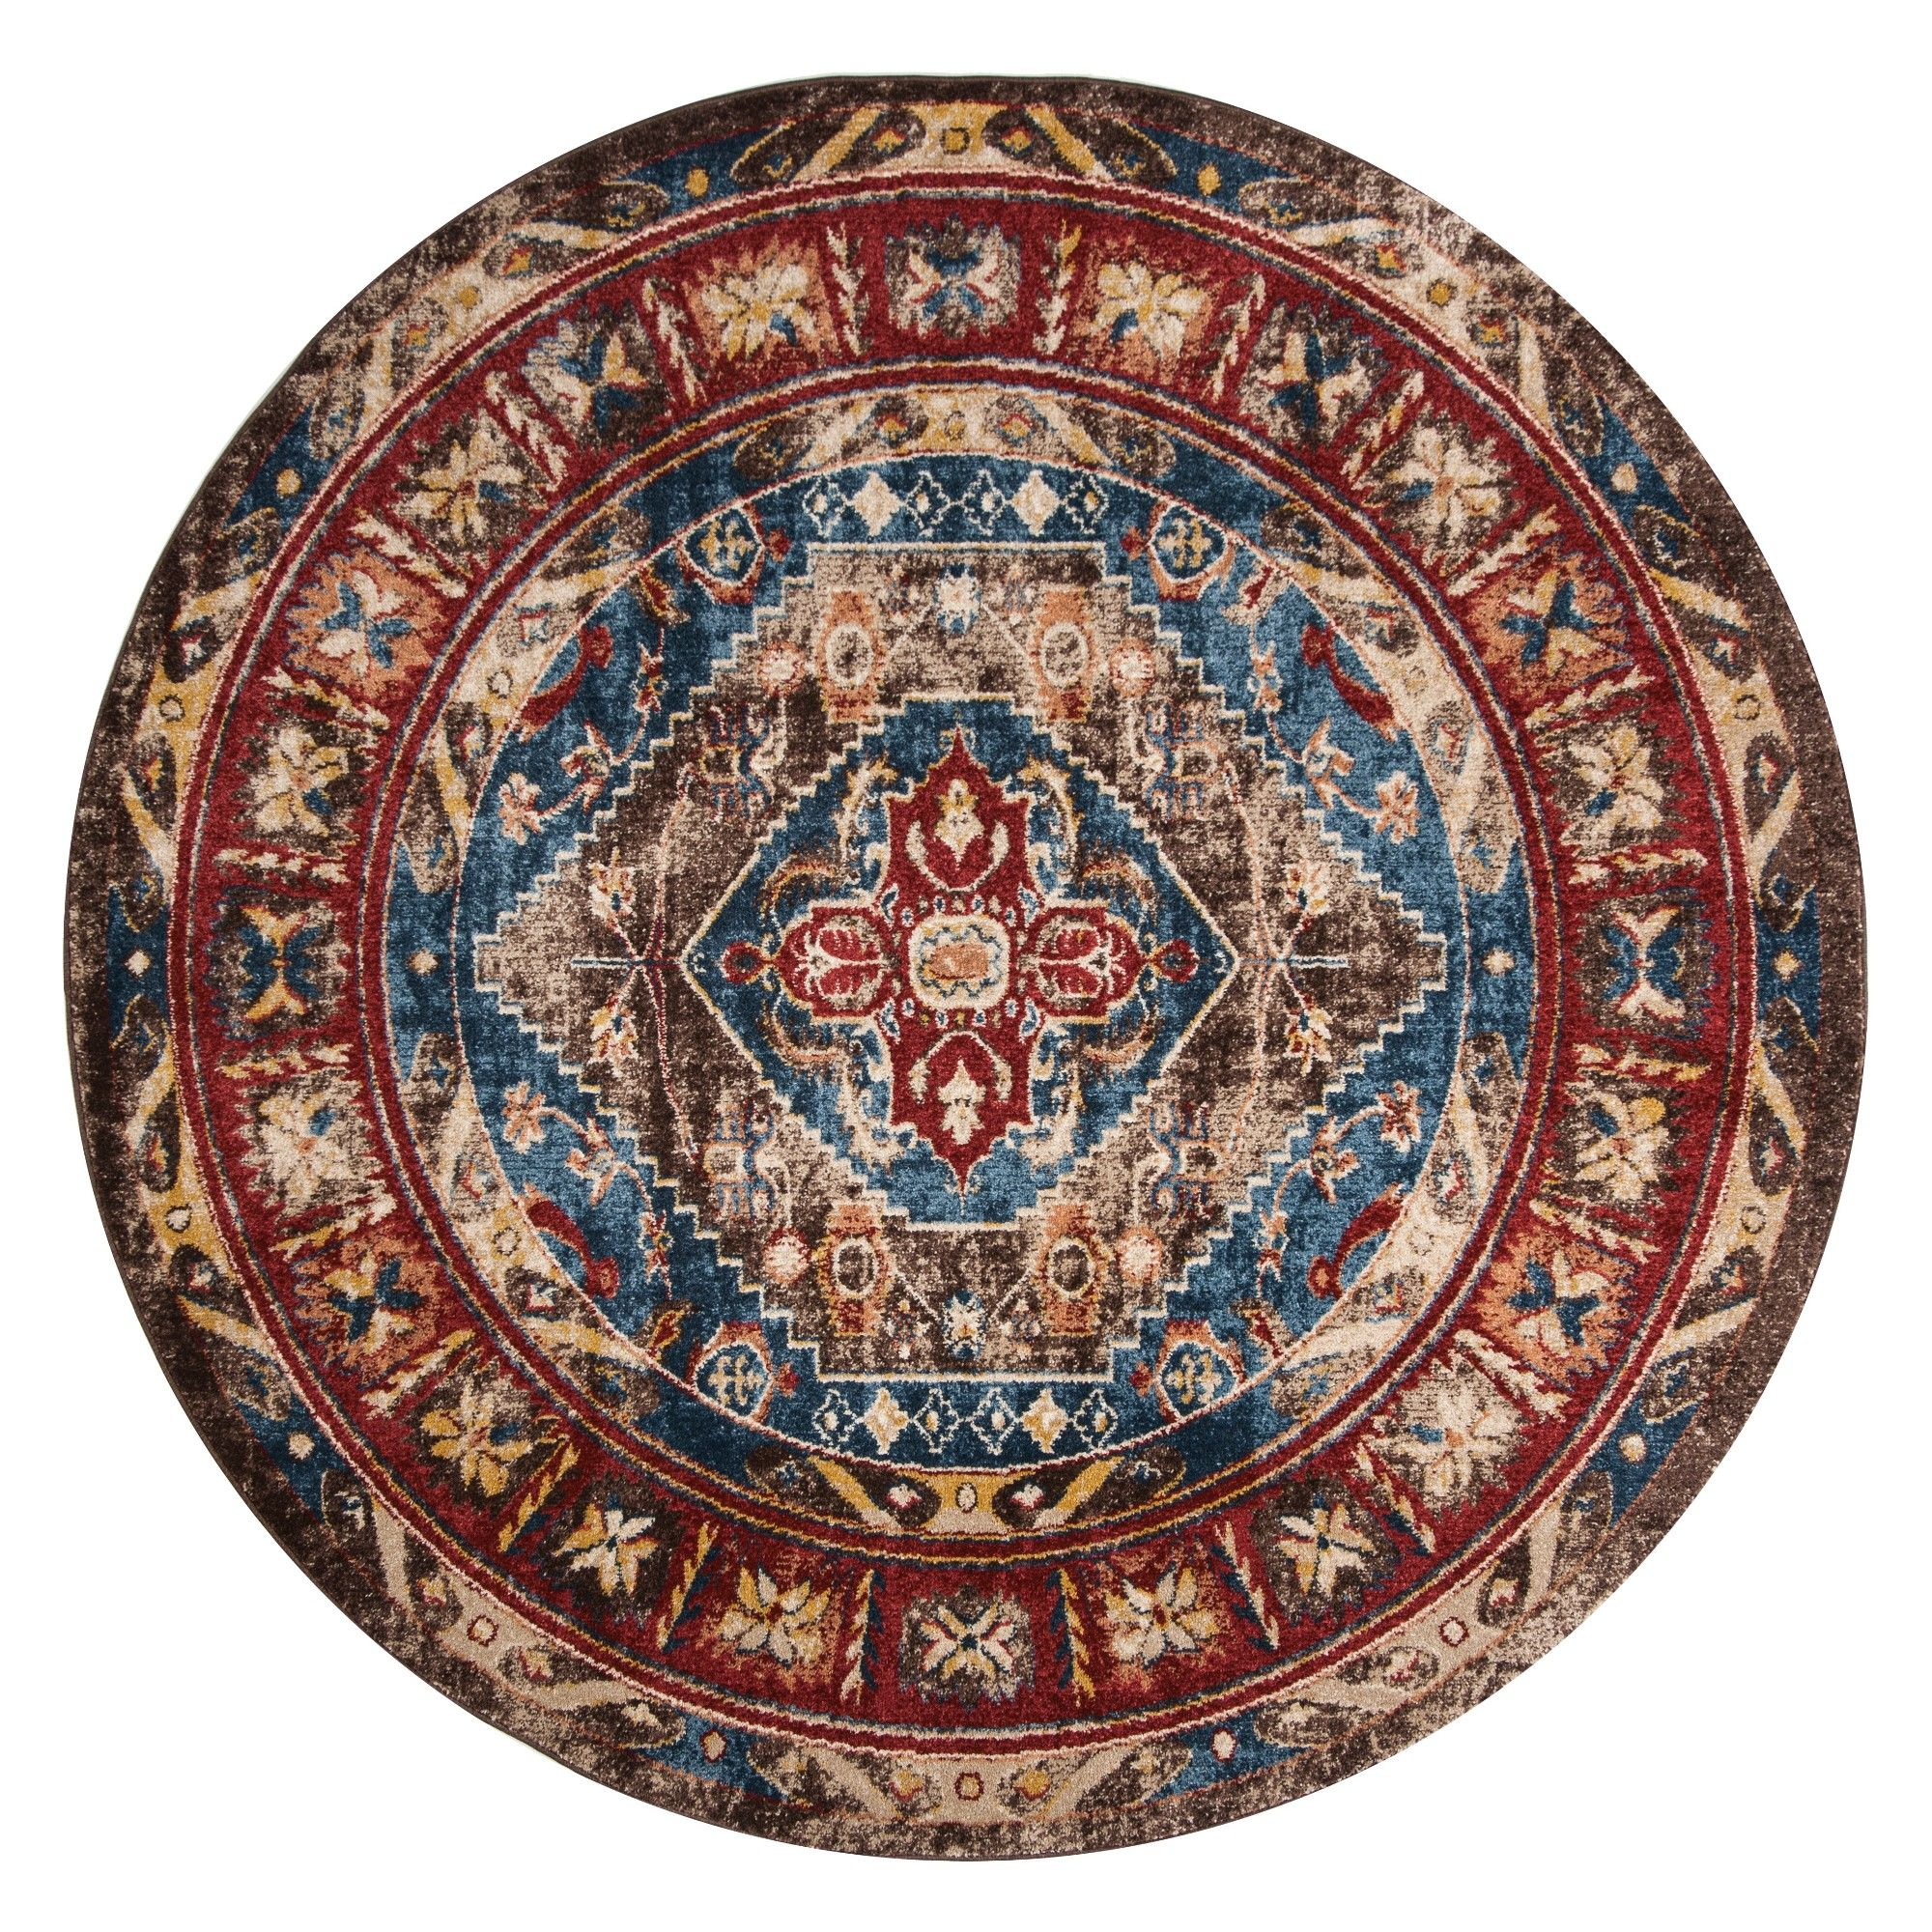 6 7 Medallion Round Area Rug Brown Royal Safavieh Adult Unisex Size 6 7 Round Brown Blue Round Area Rugs Area Rugs Persian Motifs